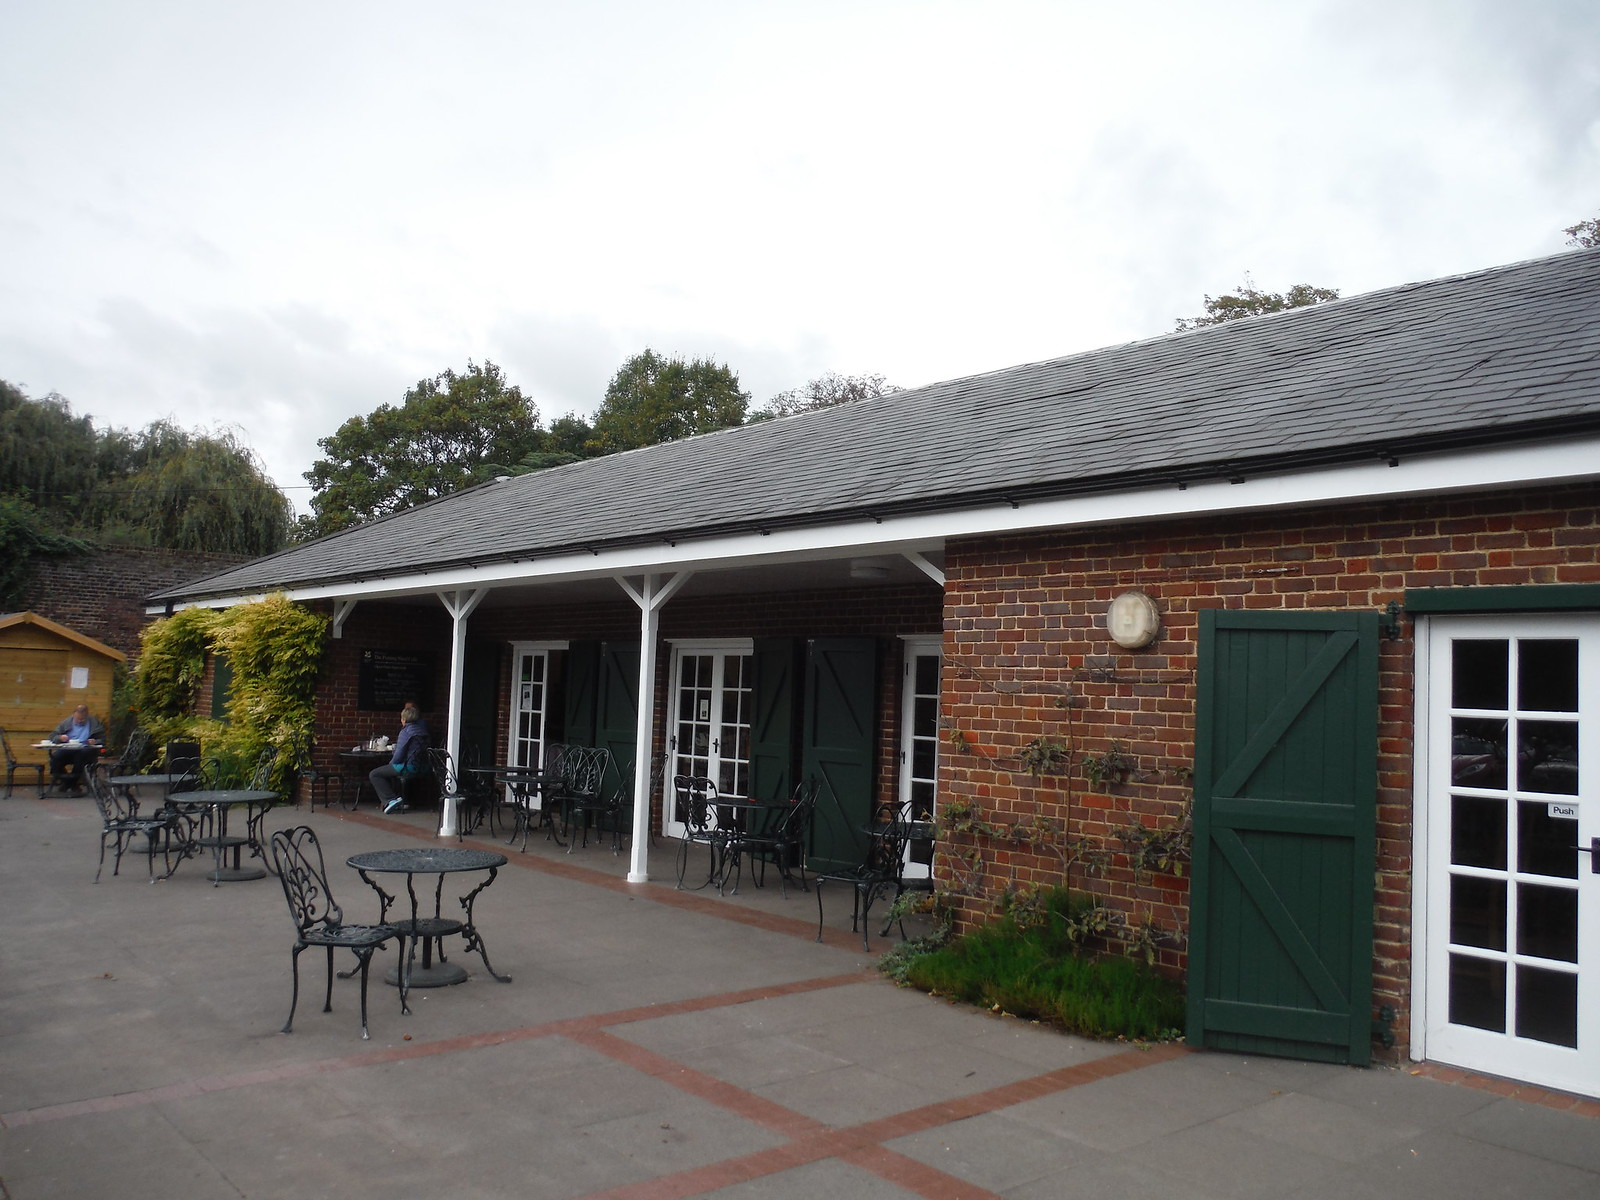 Potting Shed Cafe (NT), Morden Hall Park SWC Walk Short 13 - Morden Hall Park and Merton Abbey Mills